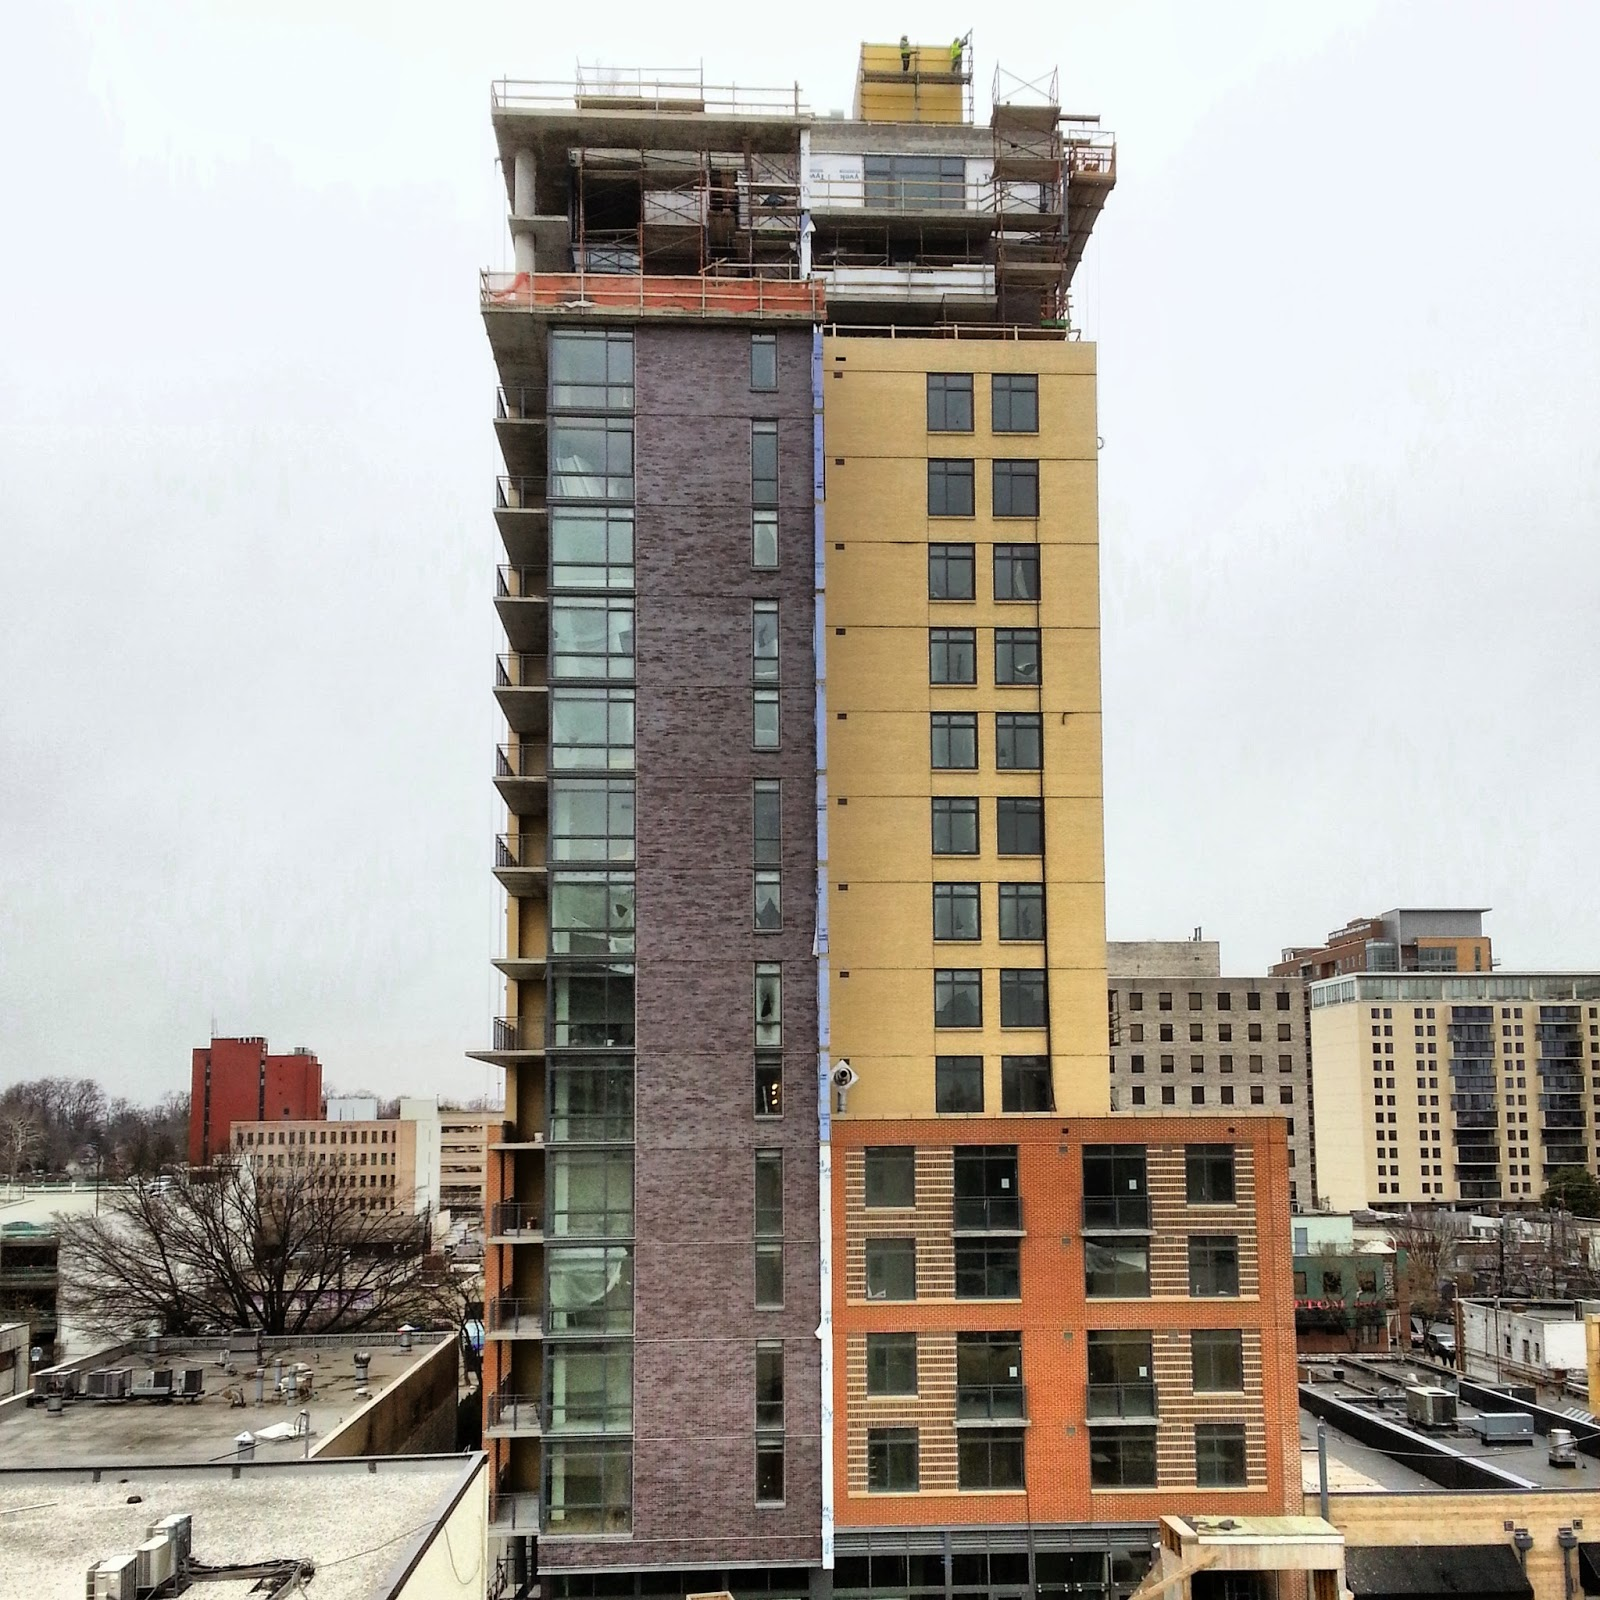 Marvelous BAINBRIDGE BETHESDA LUXURY APARTMENTS CONSTRUCTION UPDATE (PHOTOS)